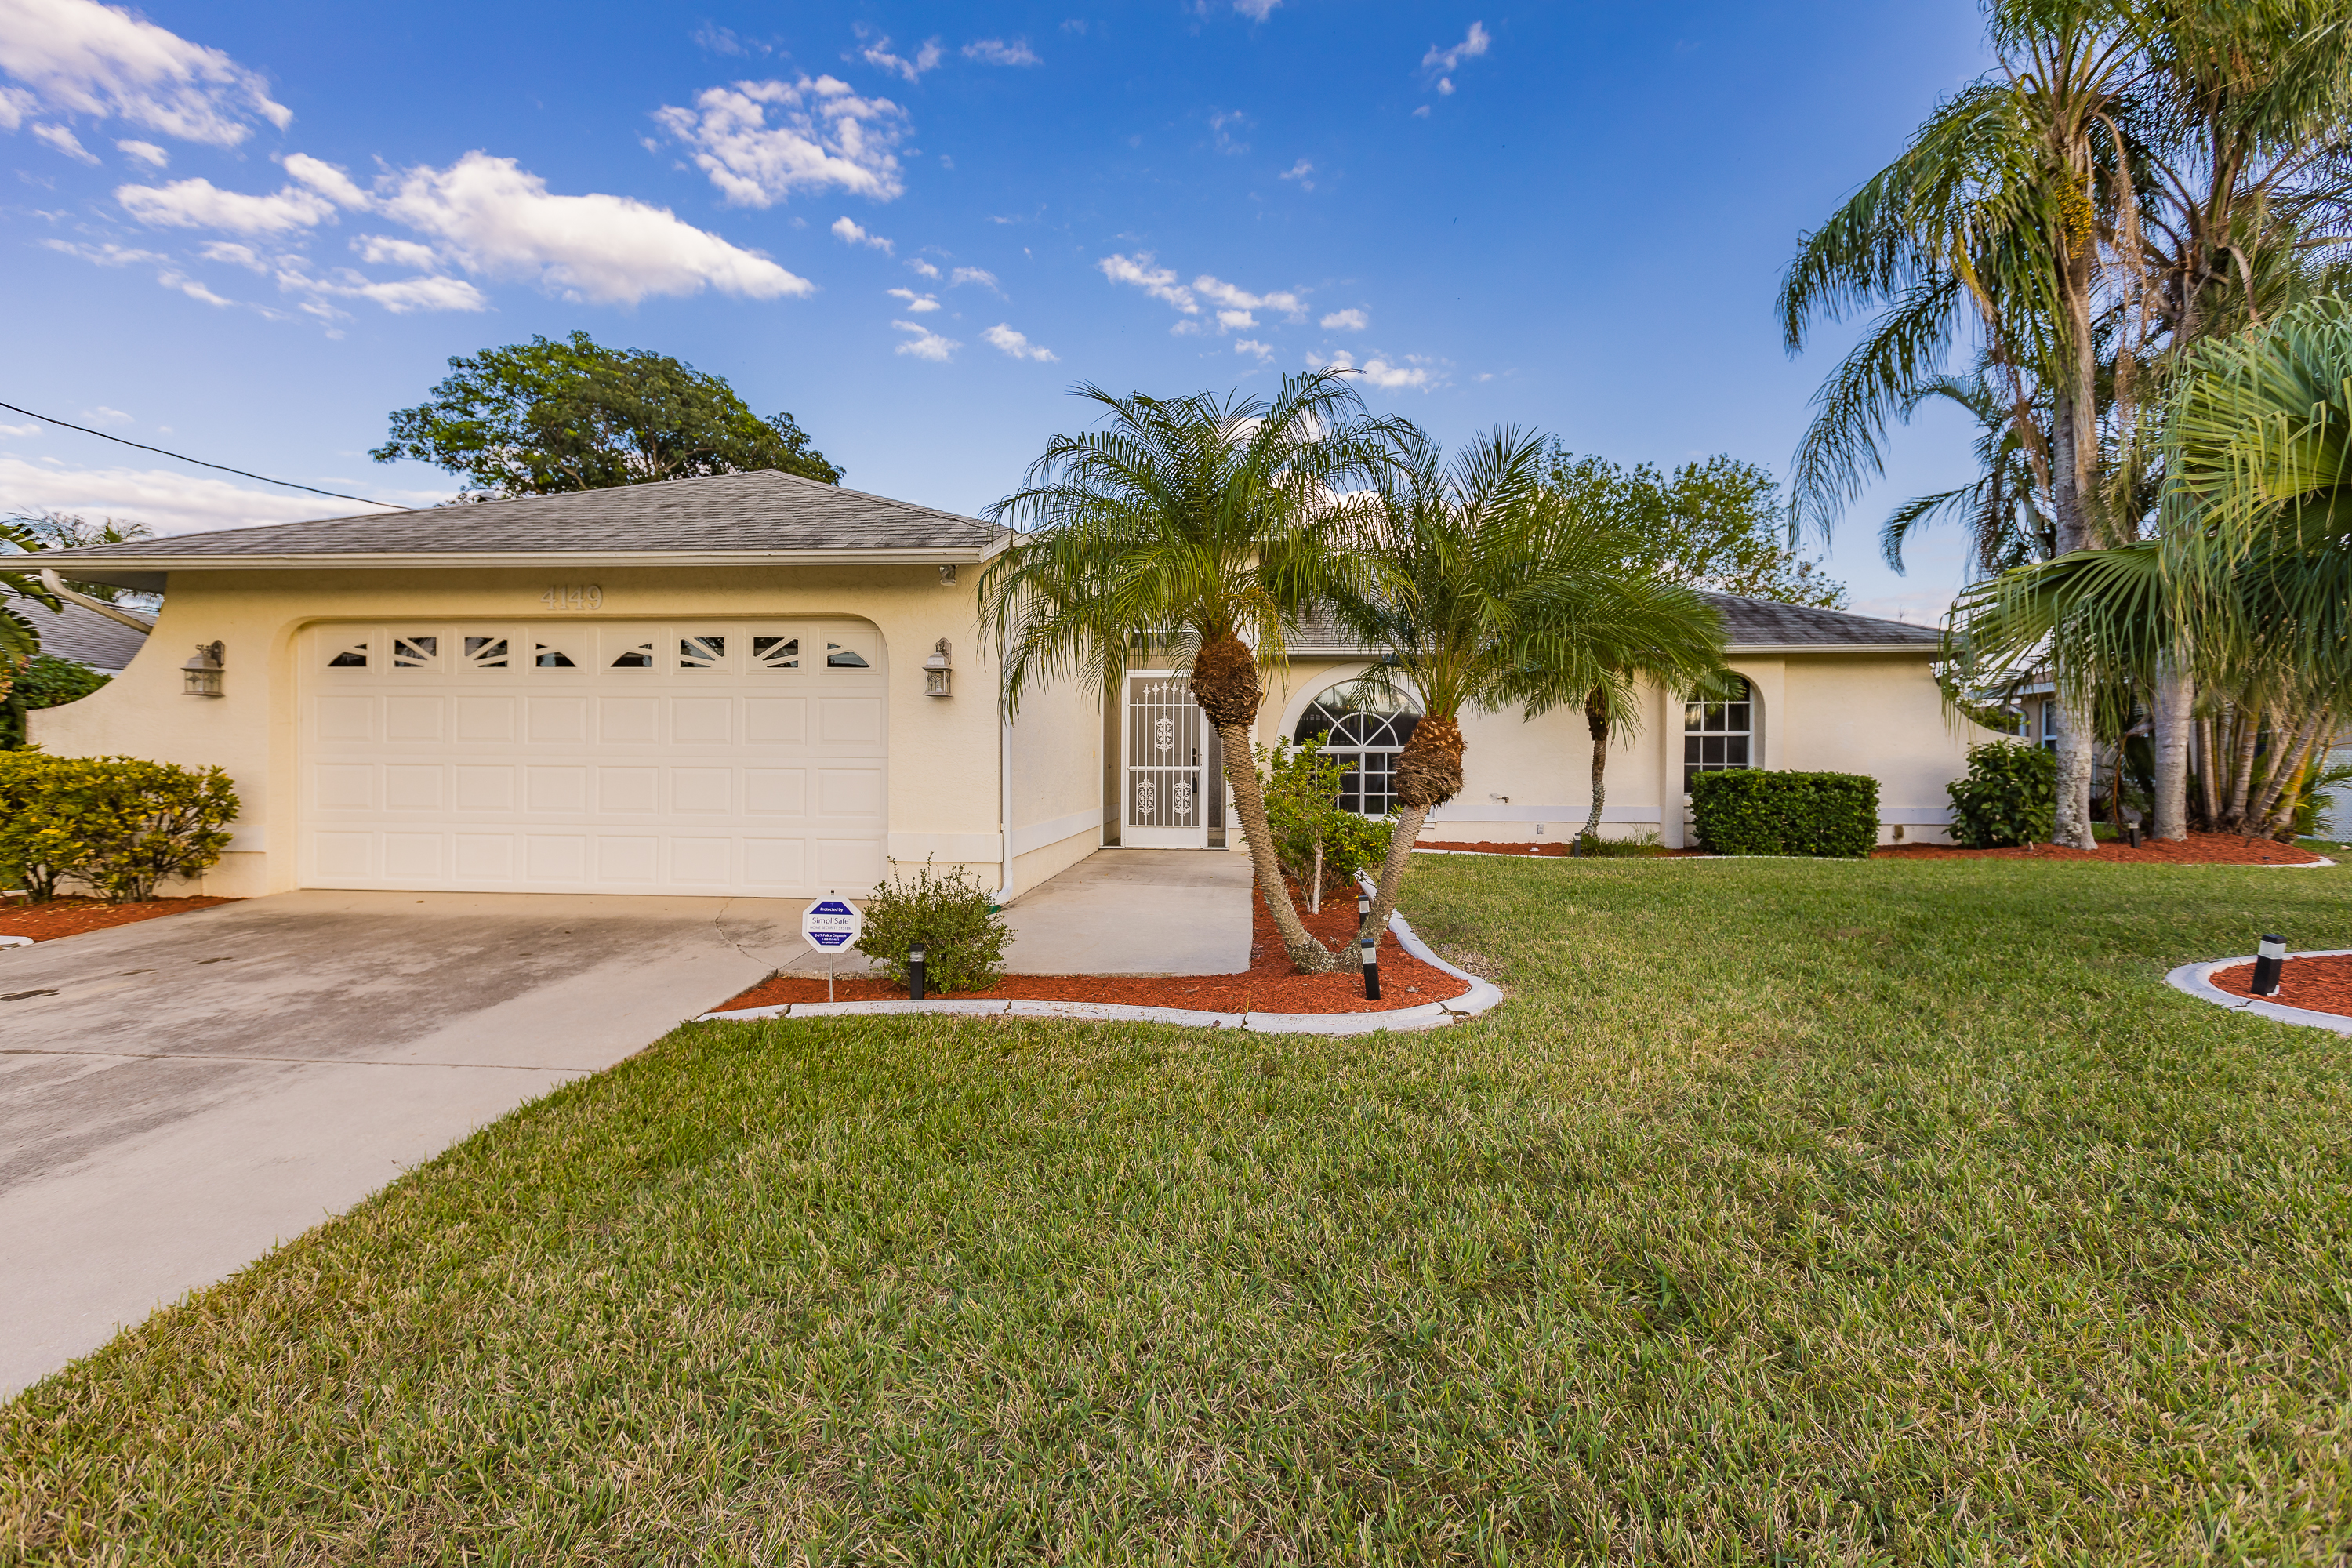 Gulf Access 3 Bed 2 Bath Home In Sw Cape Coral Very Well Maintained Angie Fritz Nichols 239